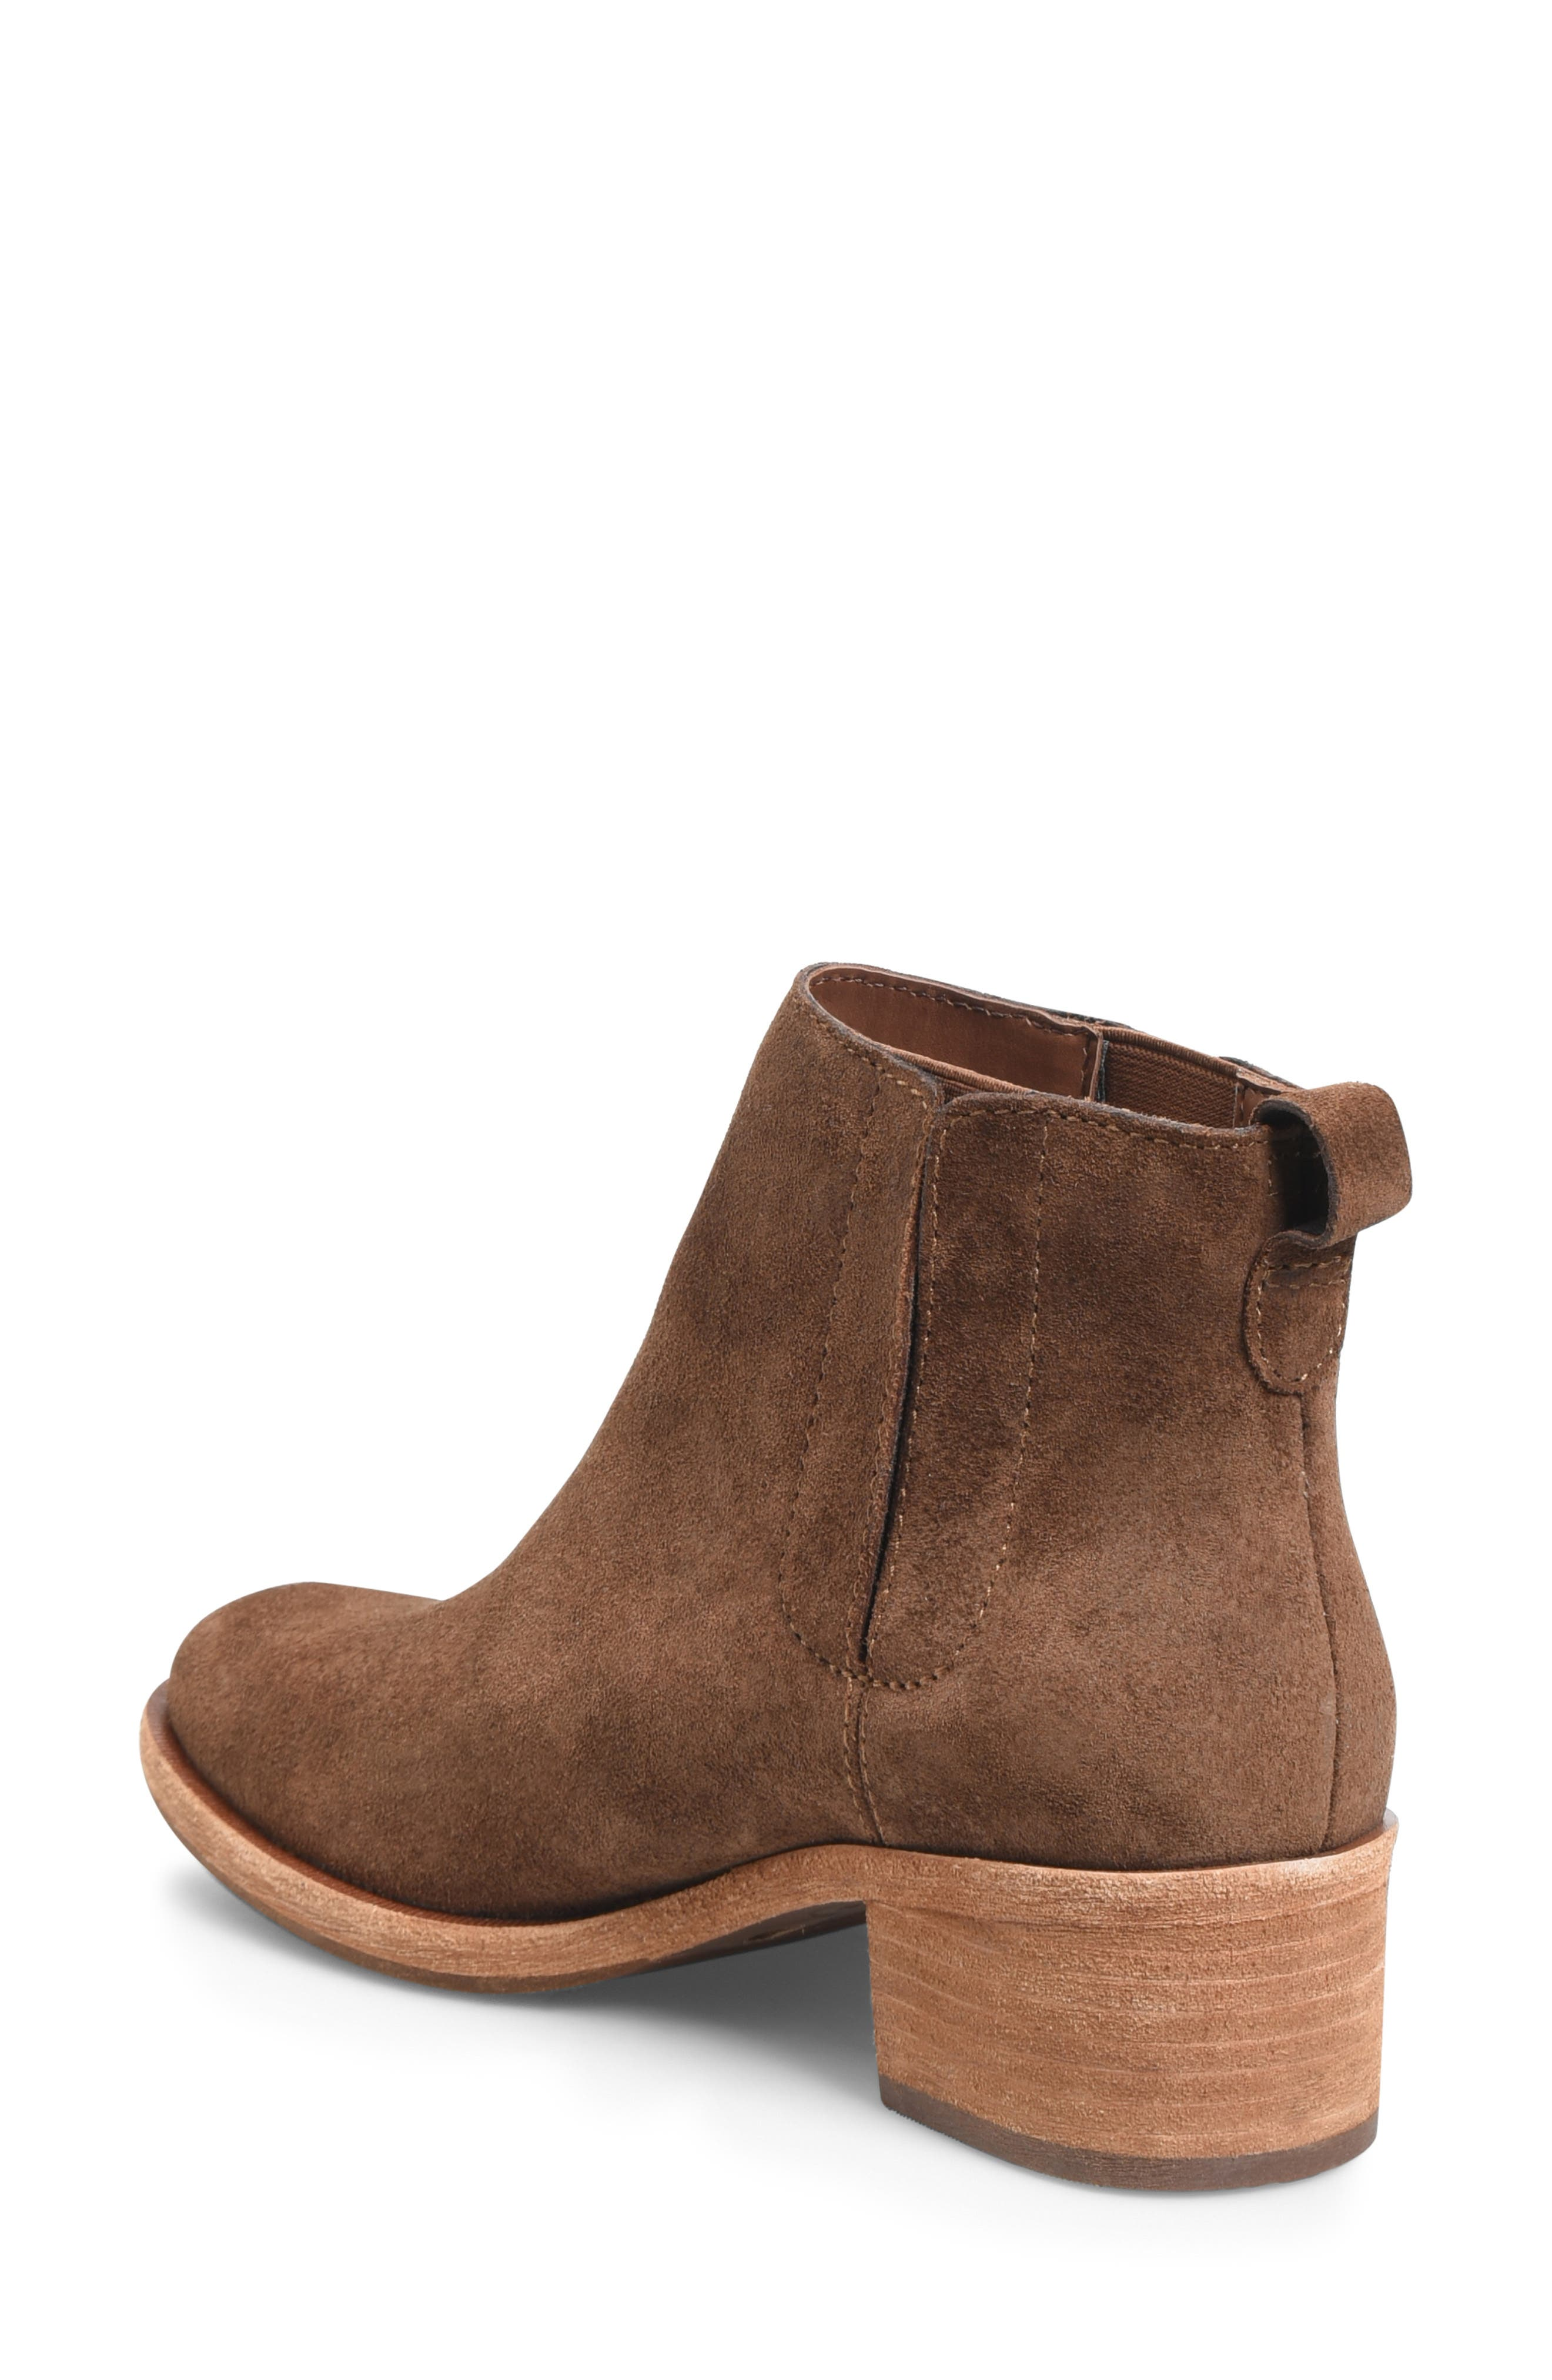 Mindo Chelsea Bootie,                             Alternate thumbnail 2, color,                             BROWN SUEDE